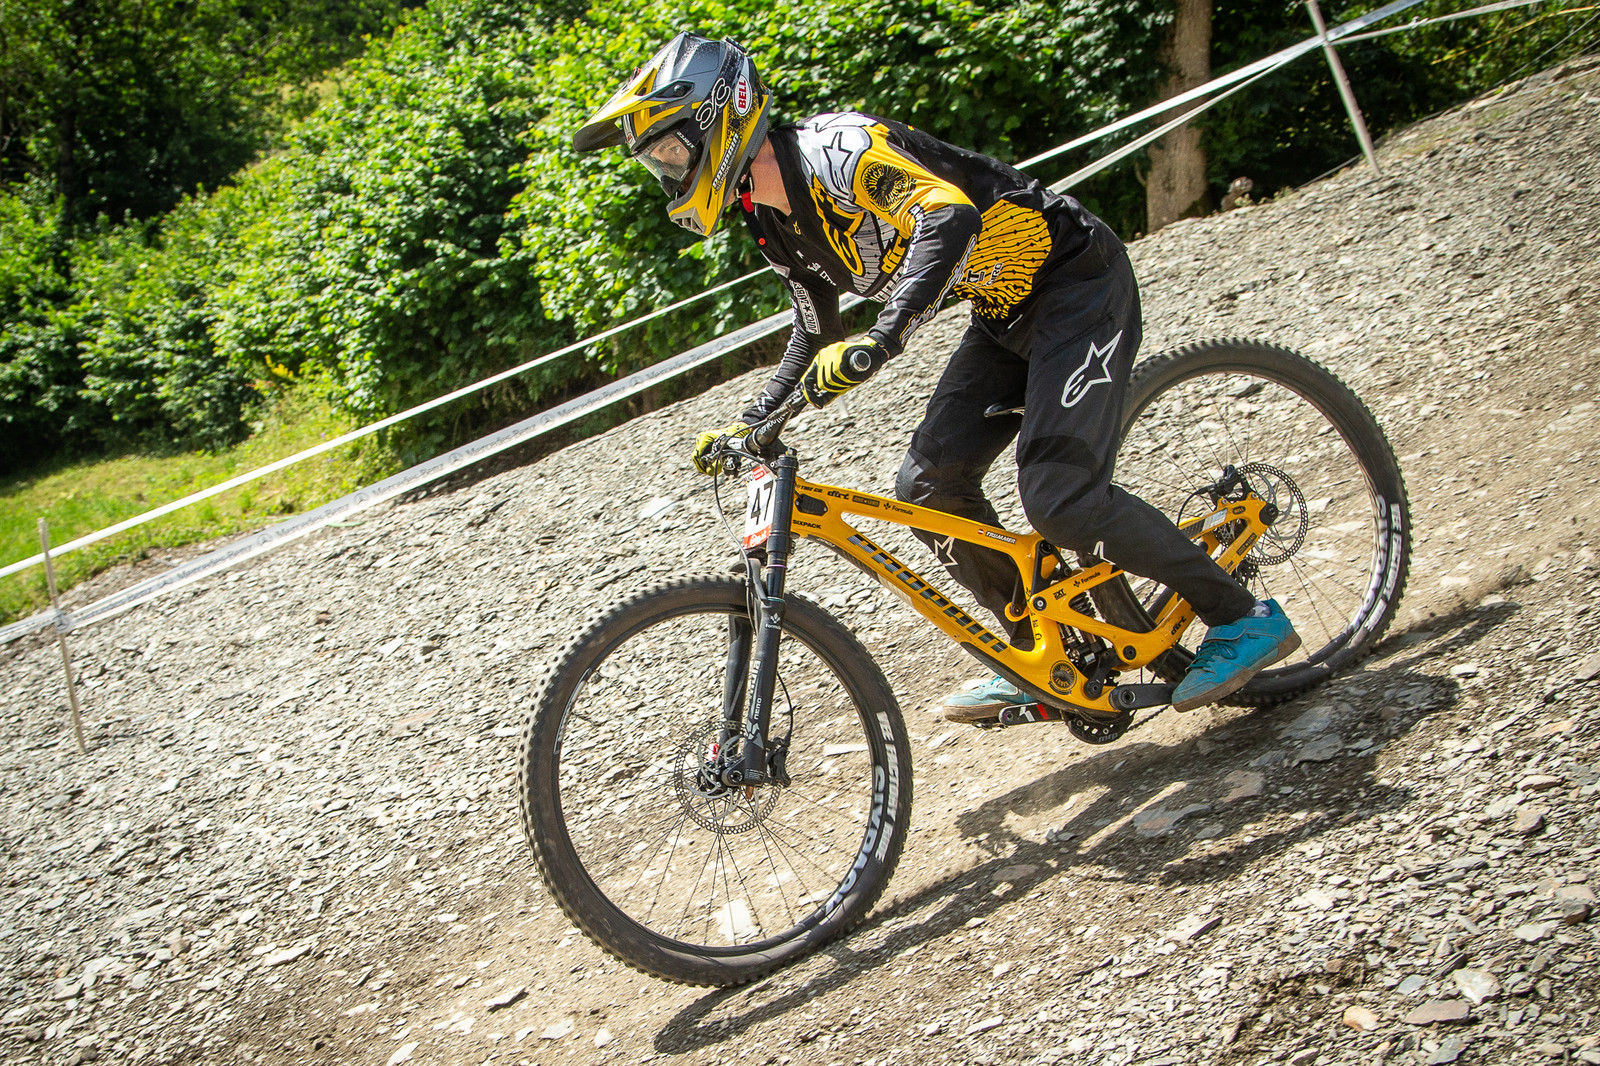 David Trummer Propain - G-Out Project - Andorra World Cup DH - Mountain Biking Pictures - Vital MTB